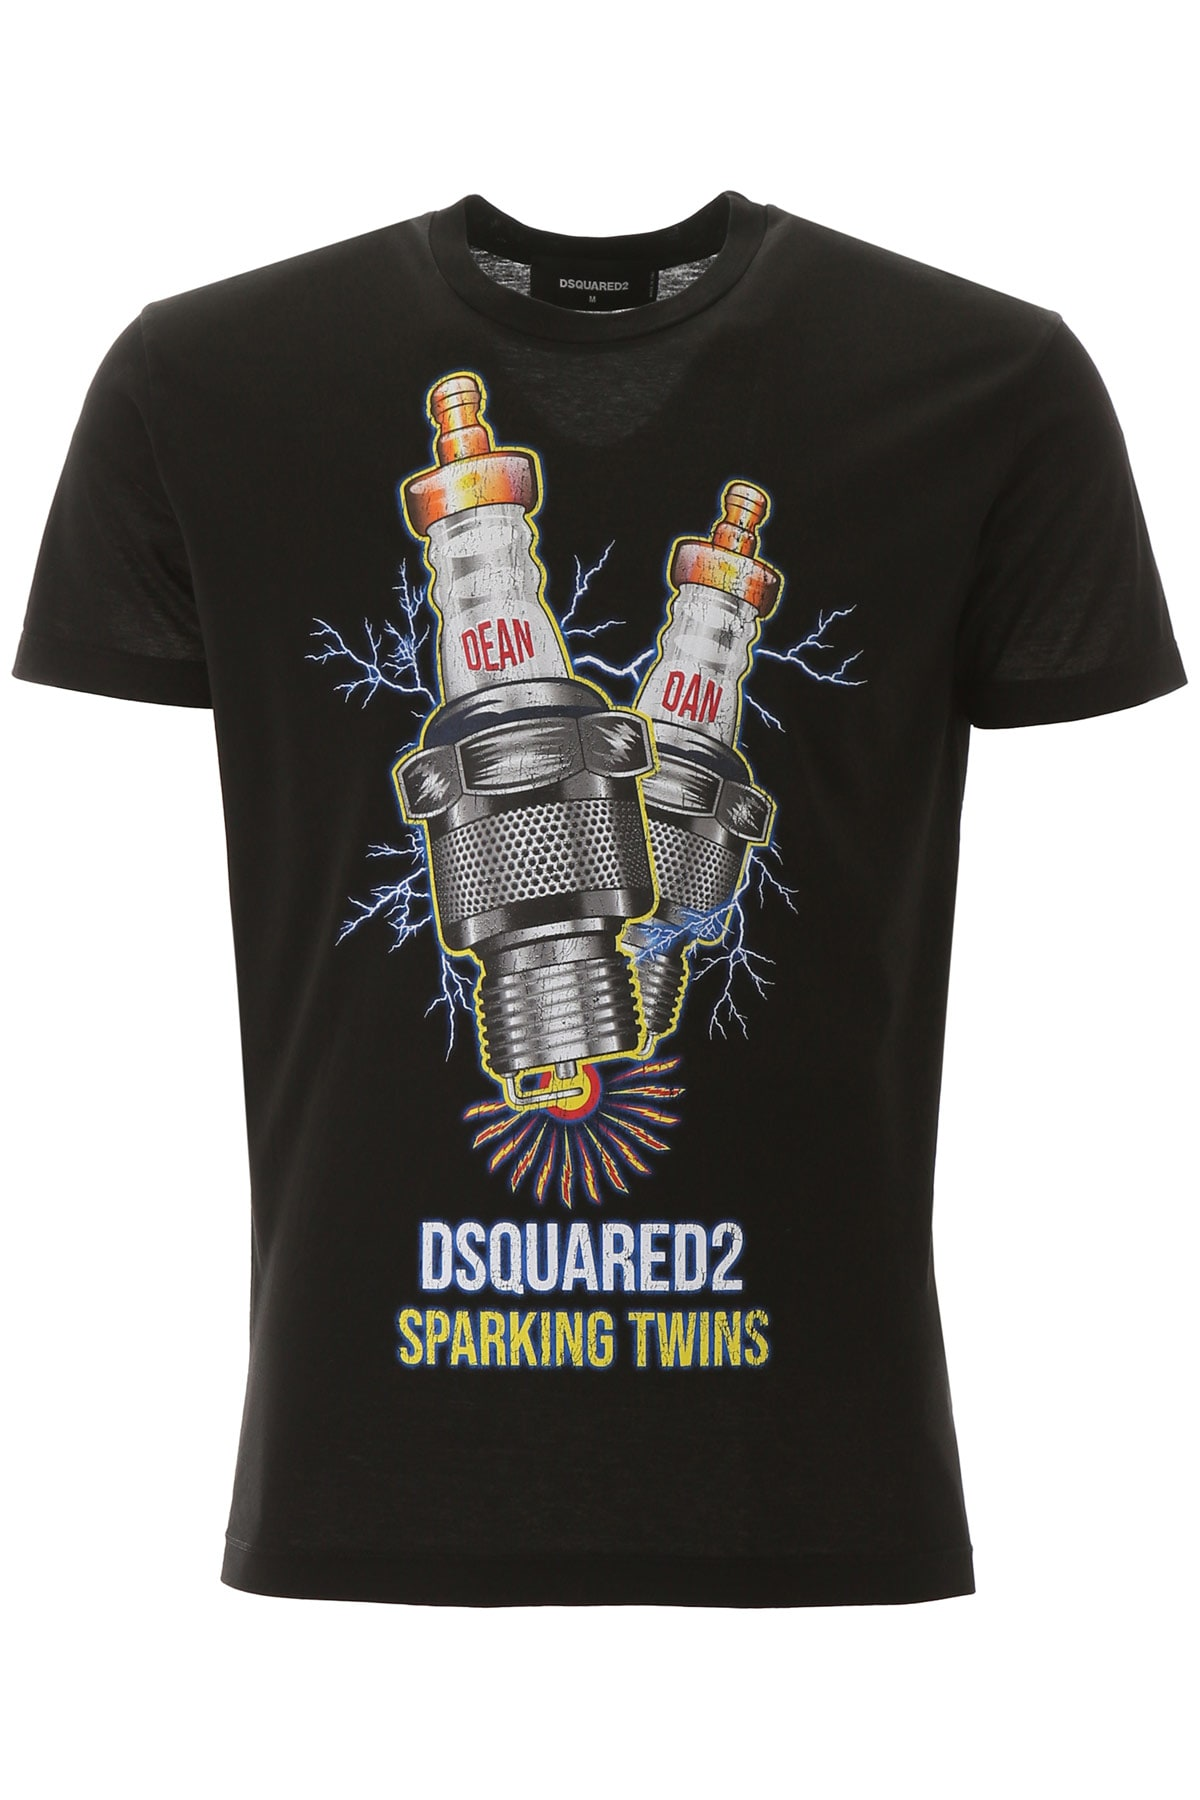 Dsquared2 Sparking Twins T-shirt